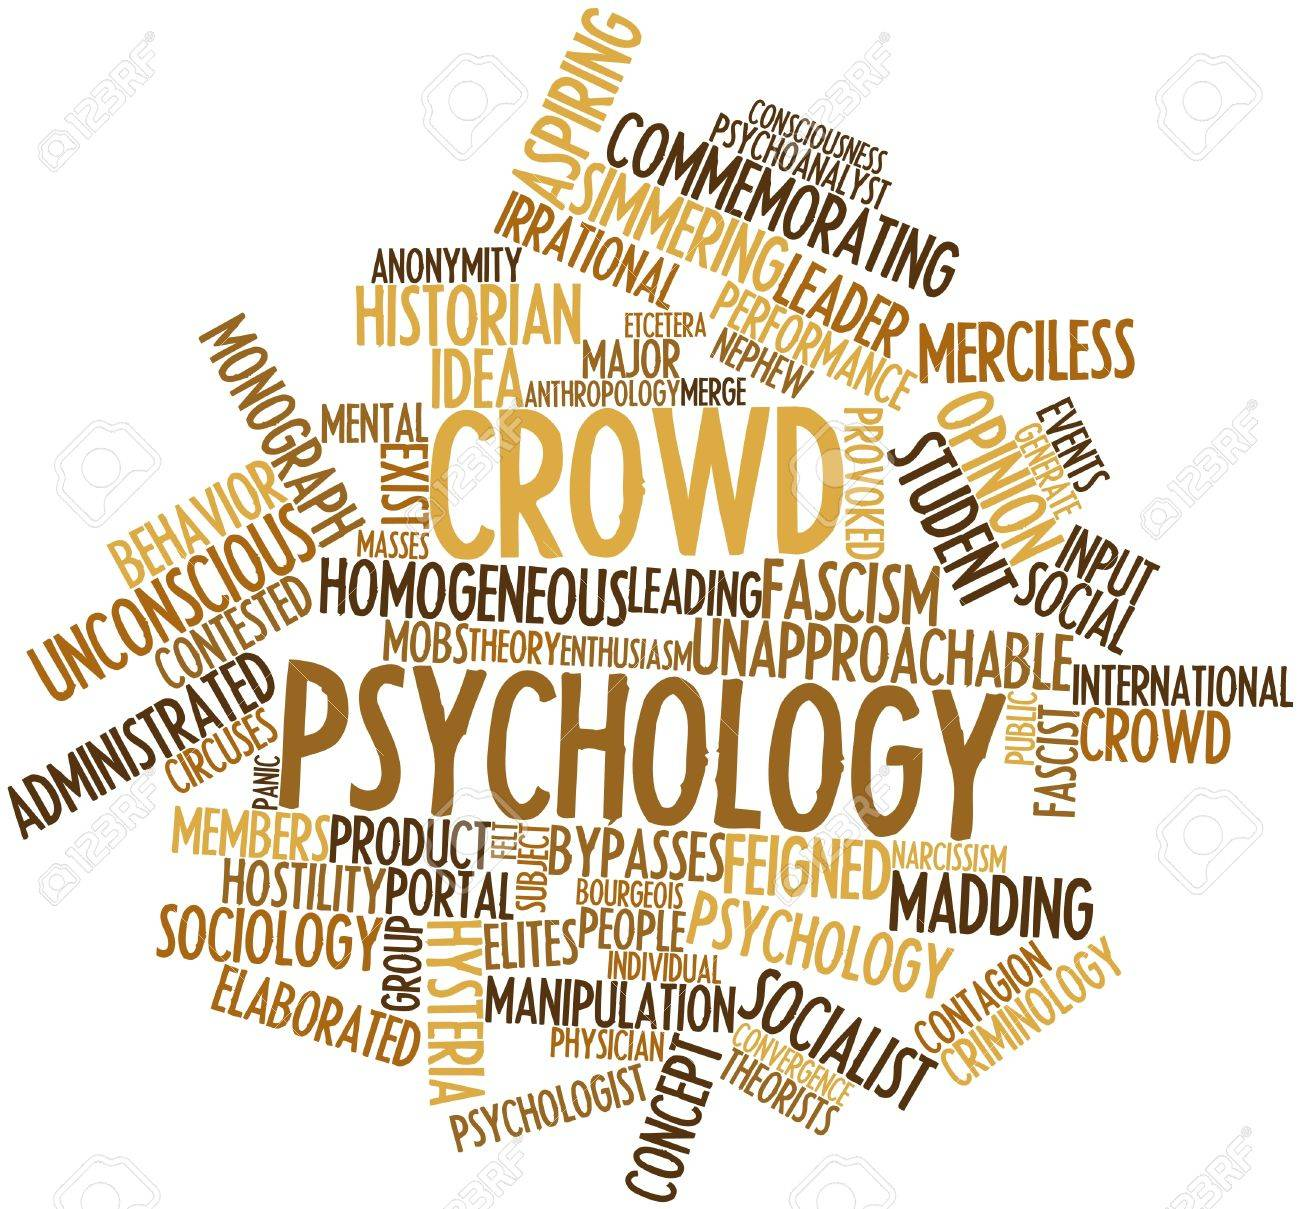 following the crowd psychology